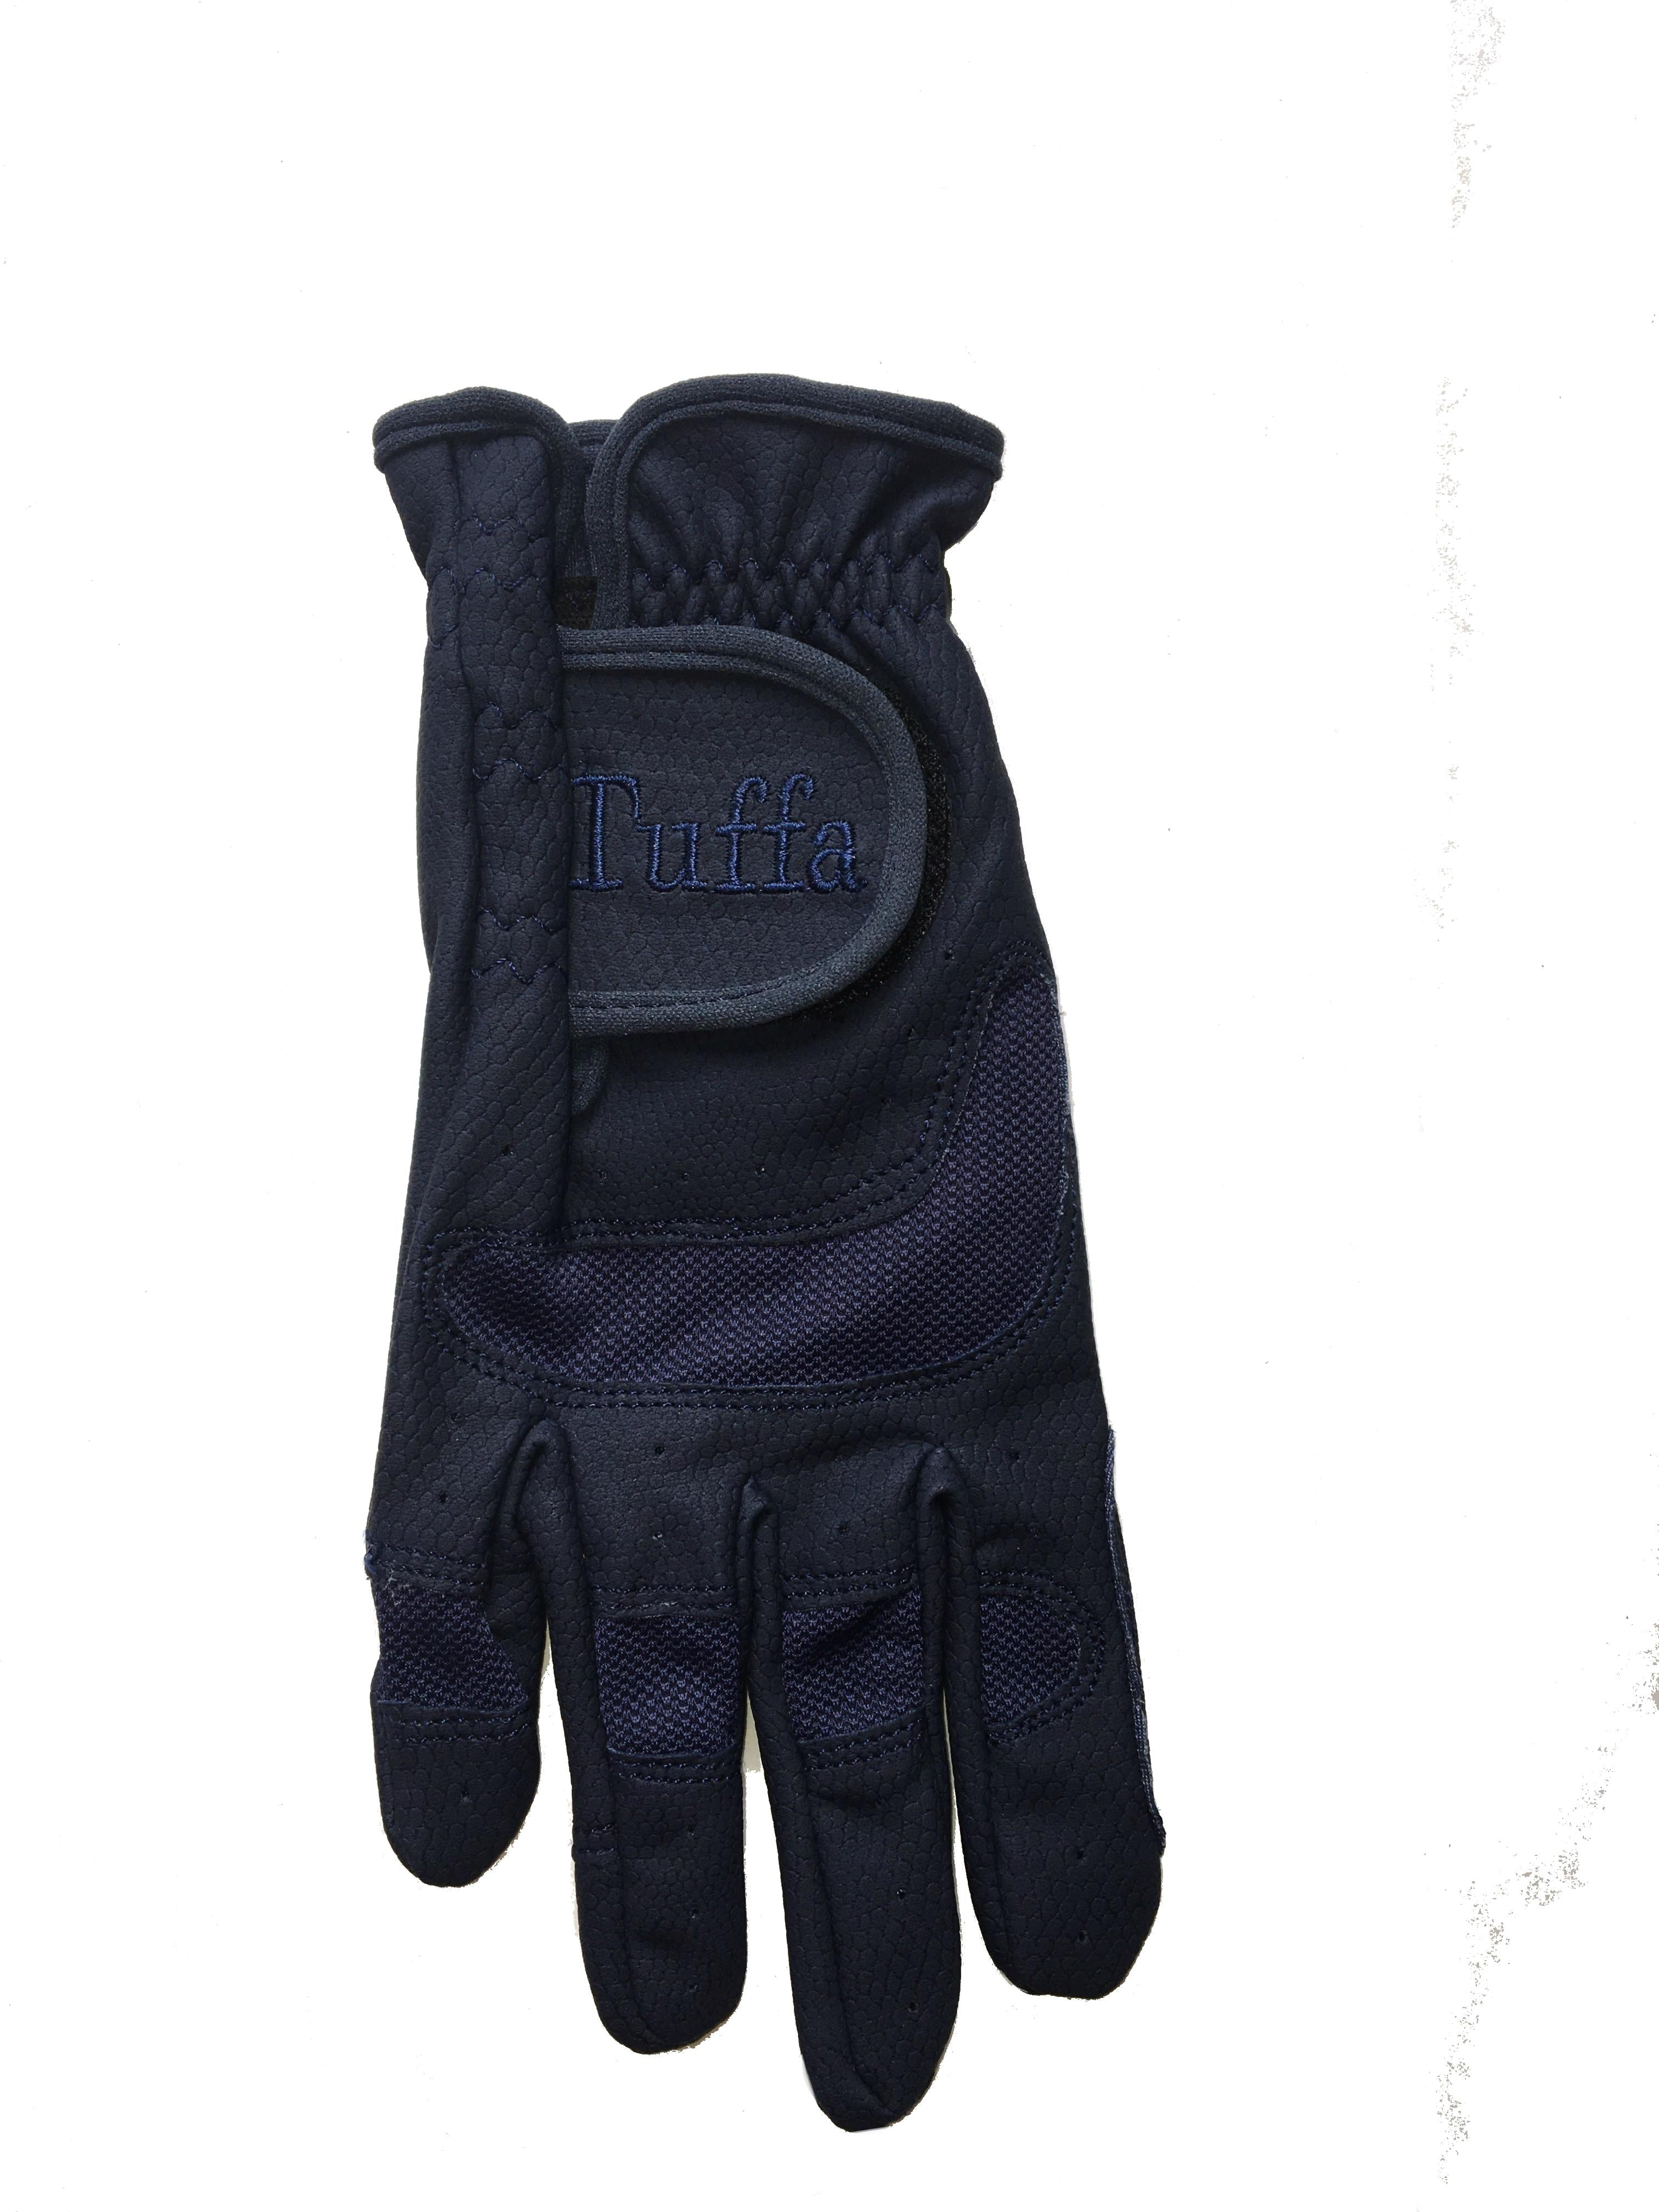 Wroxham Riding Gloves